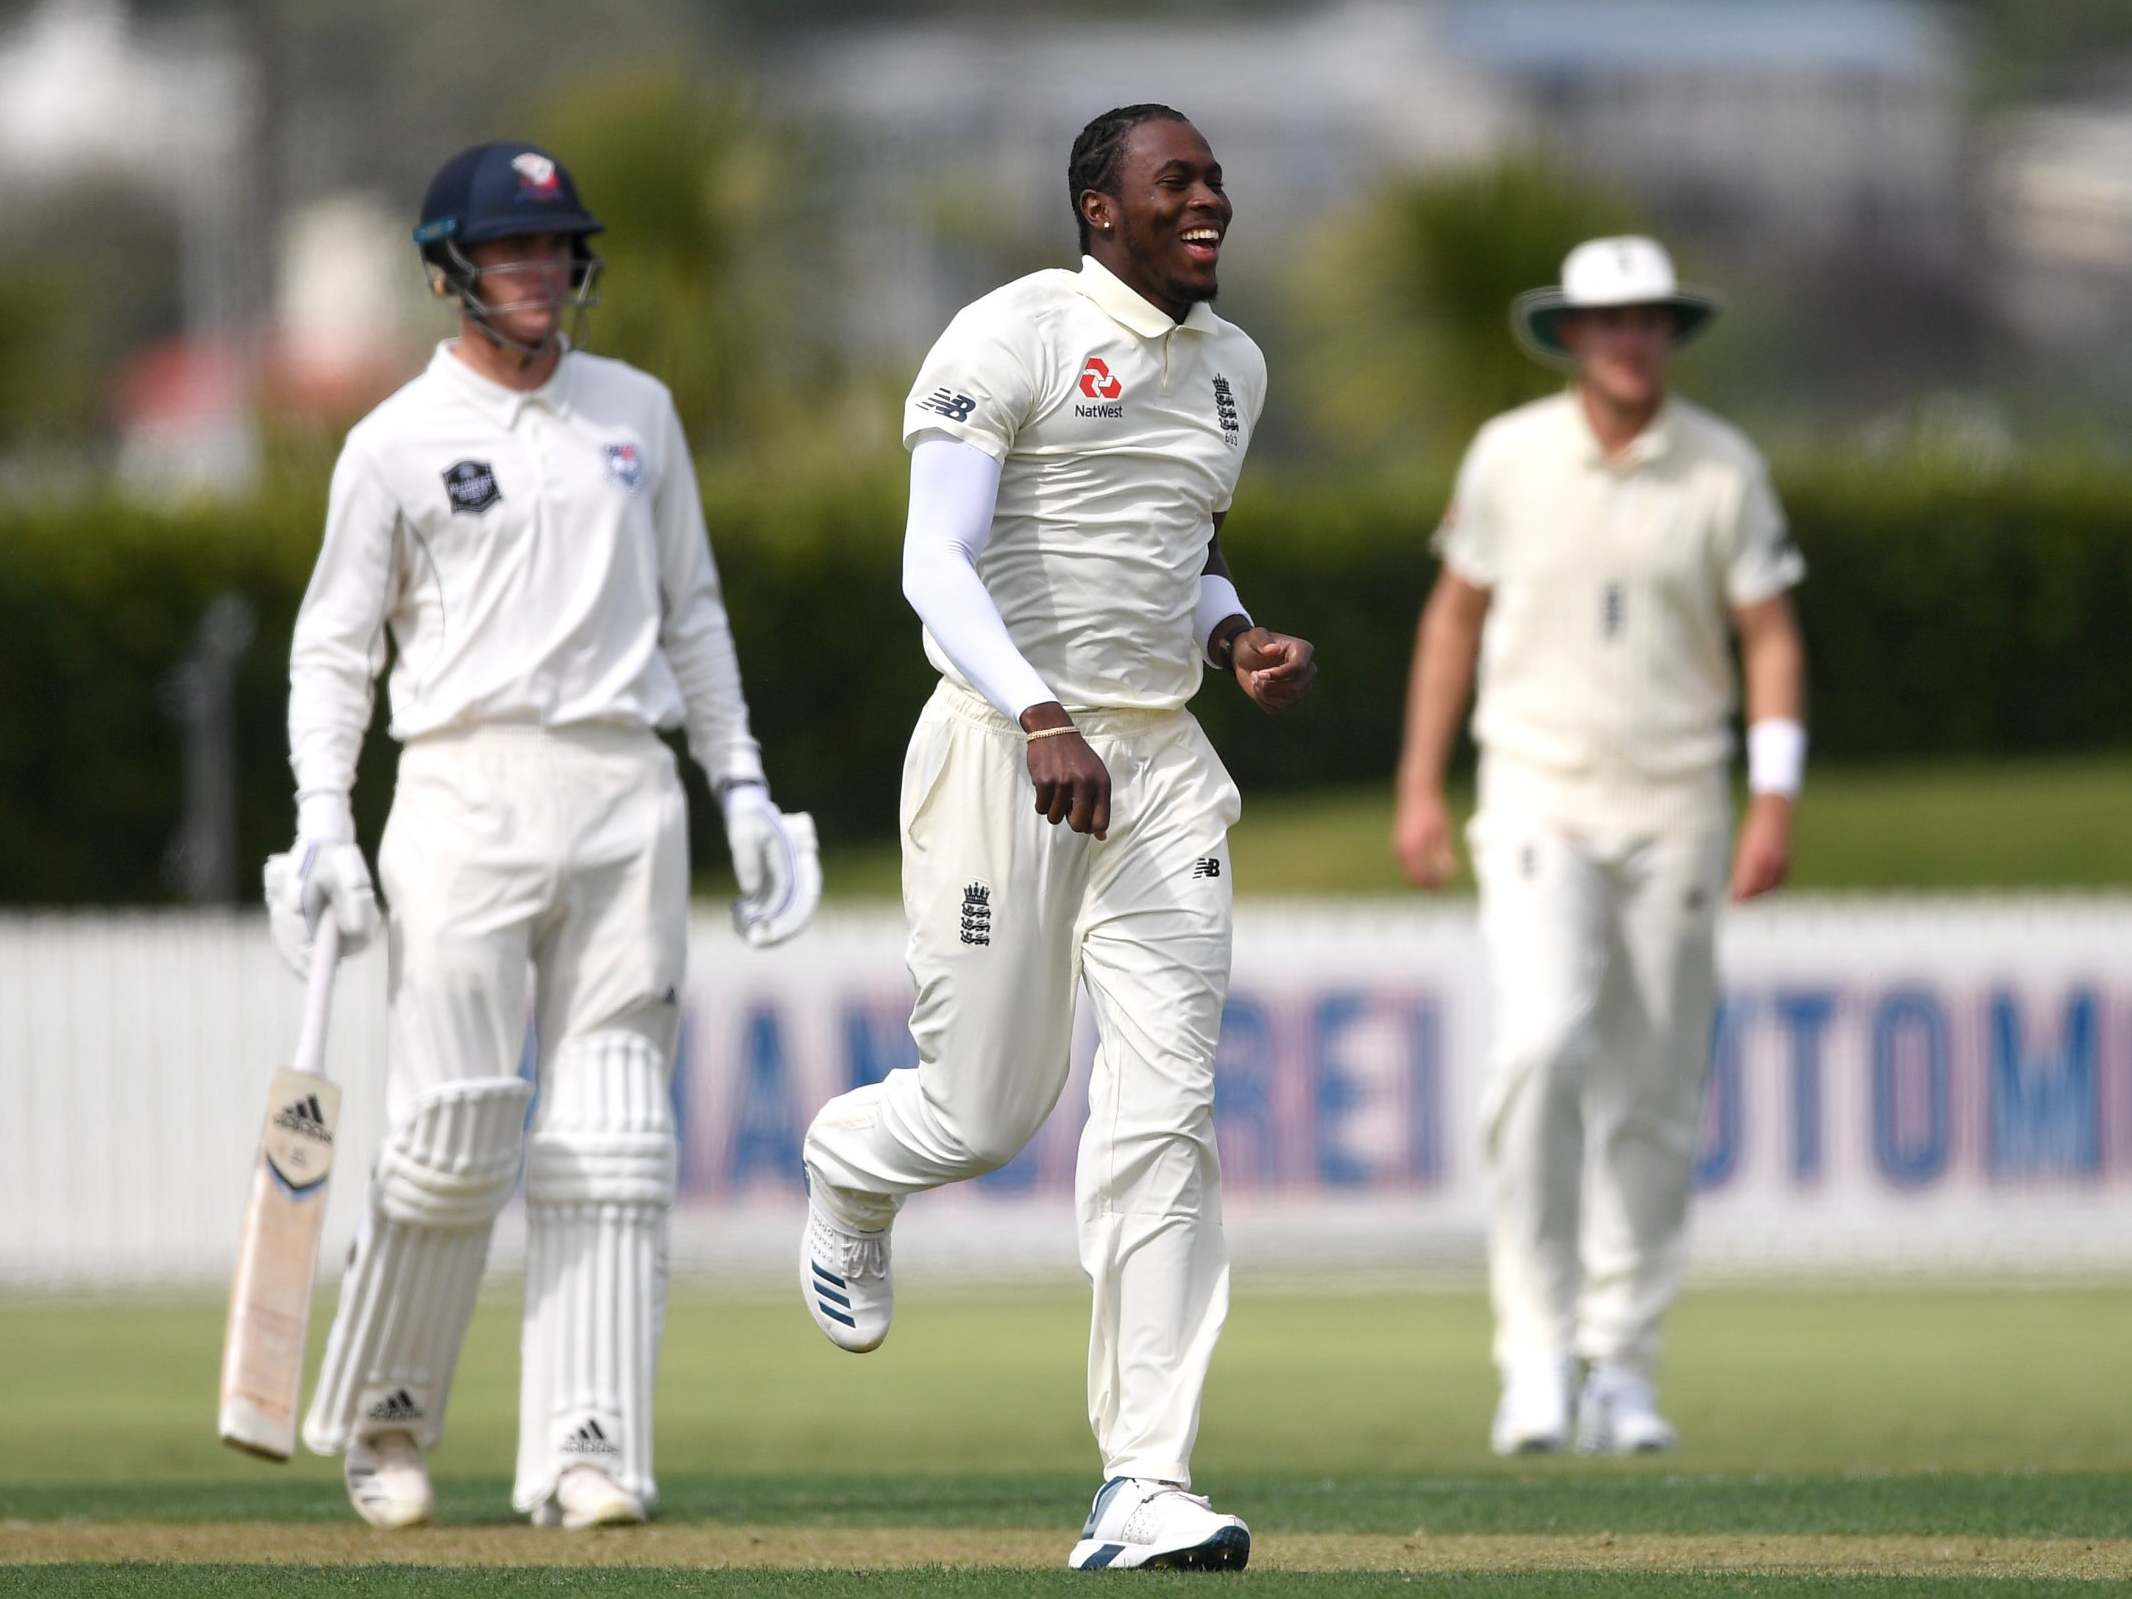 England: Ben Stokes and Jofra Archer given stiff workout in New Zealand Test series warm-up